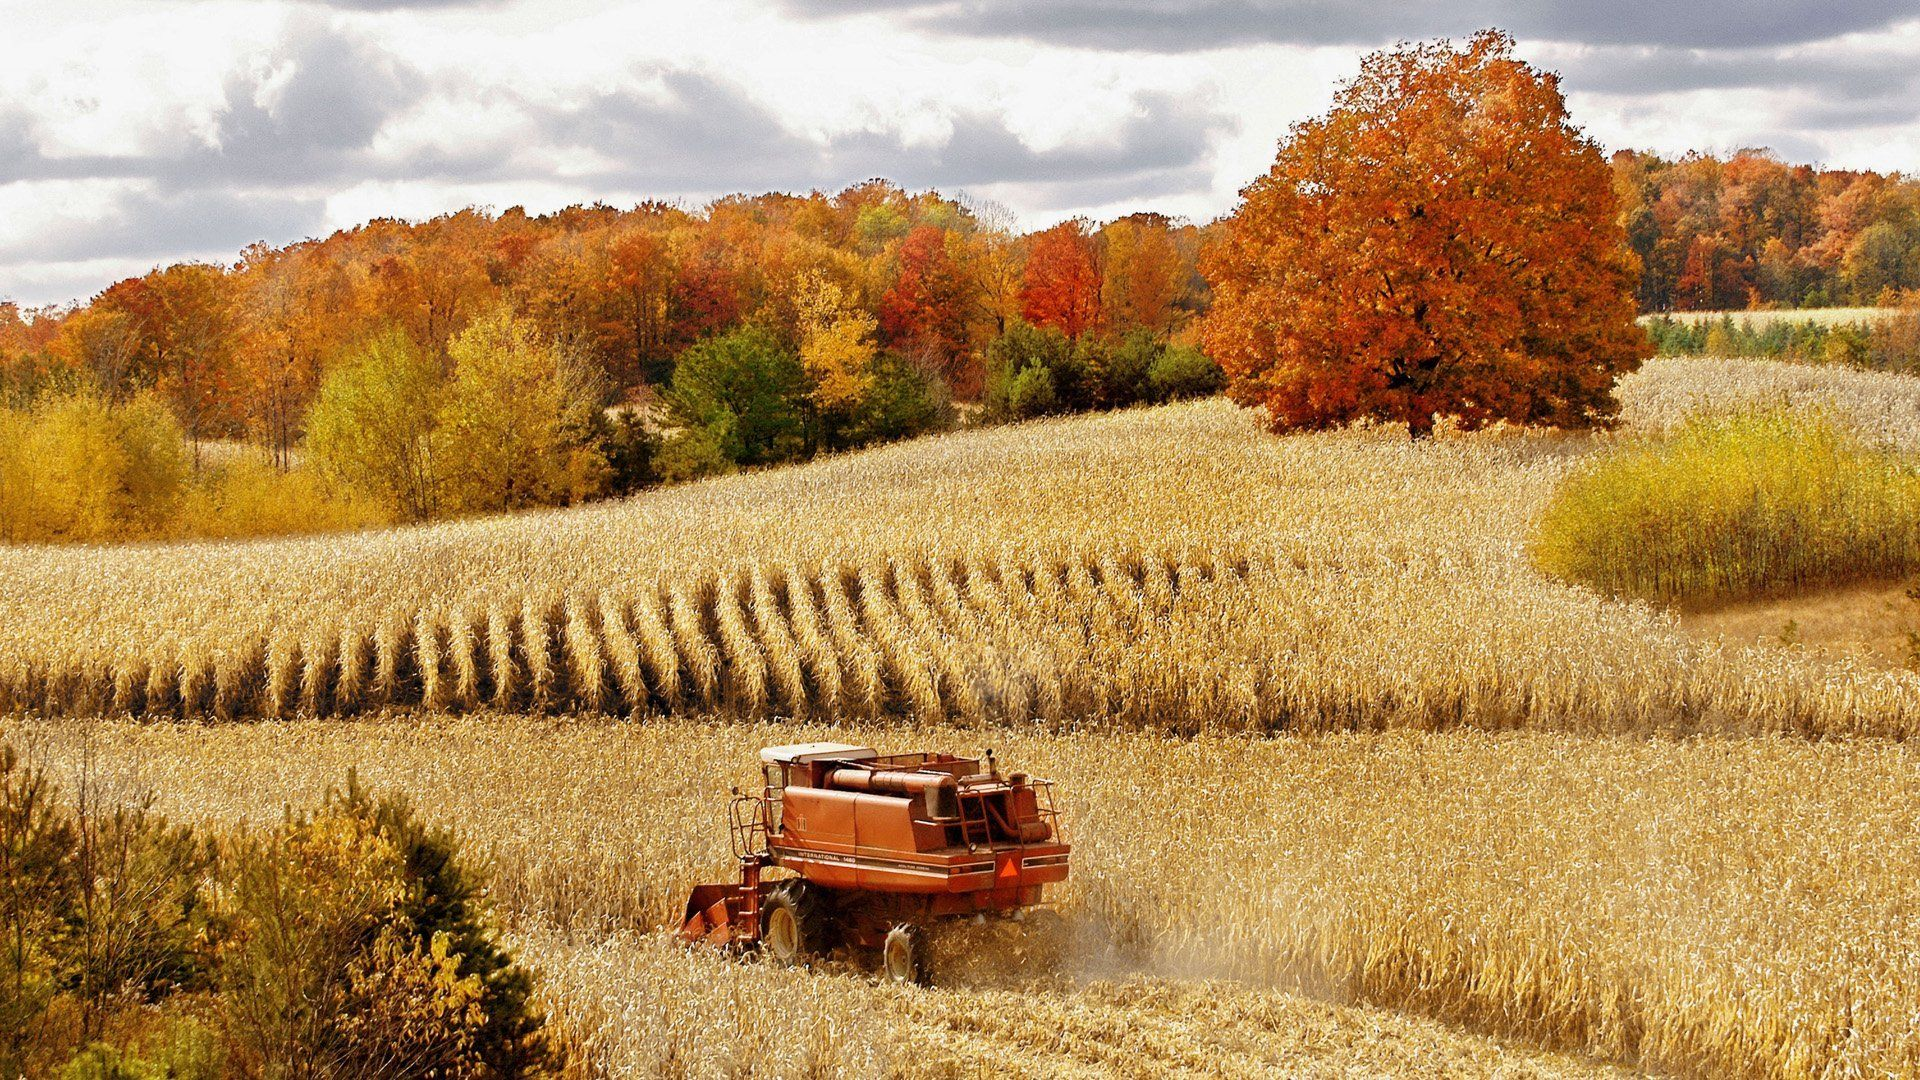 Download Wallpaper wheat, field, autumn, forest, nature